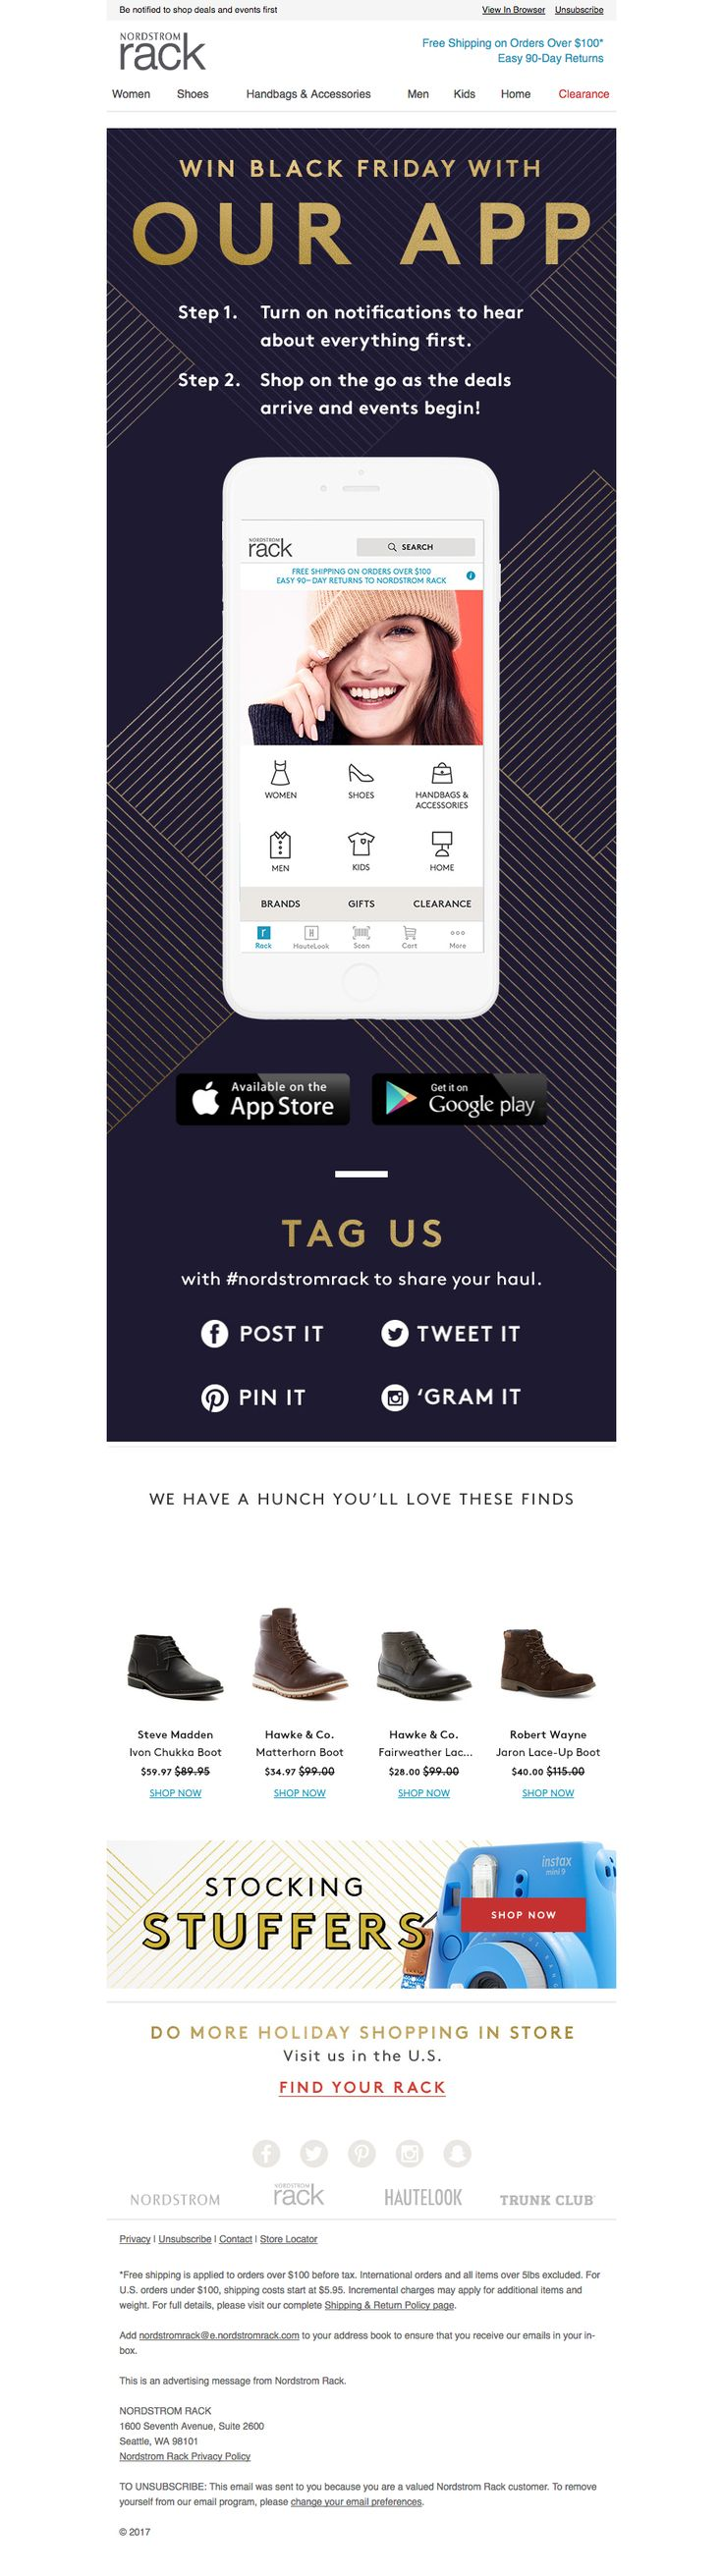 Nordstrom Rack: Win on Black Friday with our App